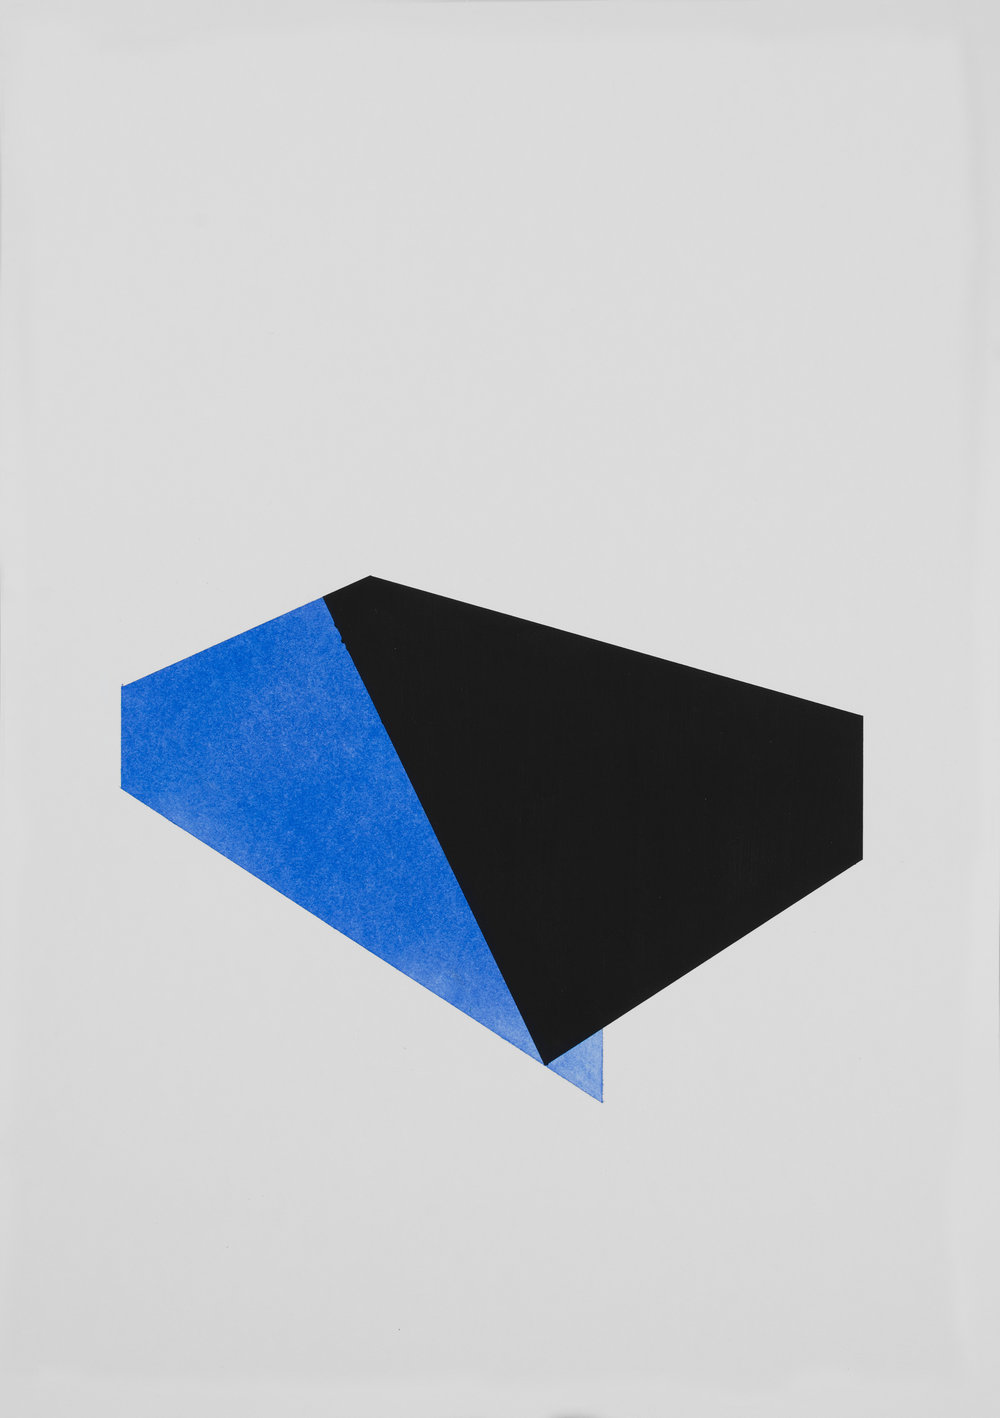 Over and above ultramarine, acrylic and pigment on 220gsm acid free paper, 42cm x 59cm, copyright Patrick O'Donnell